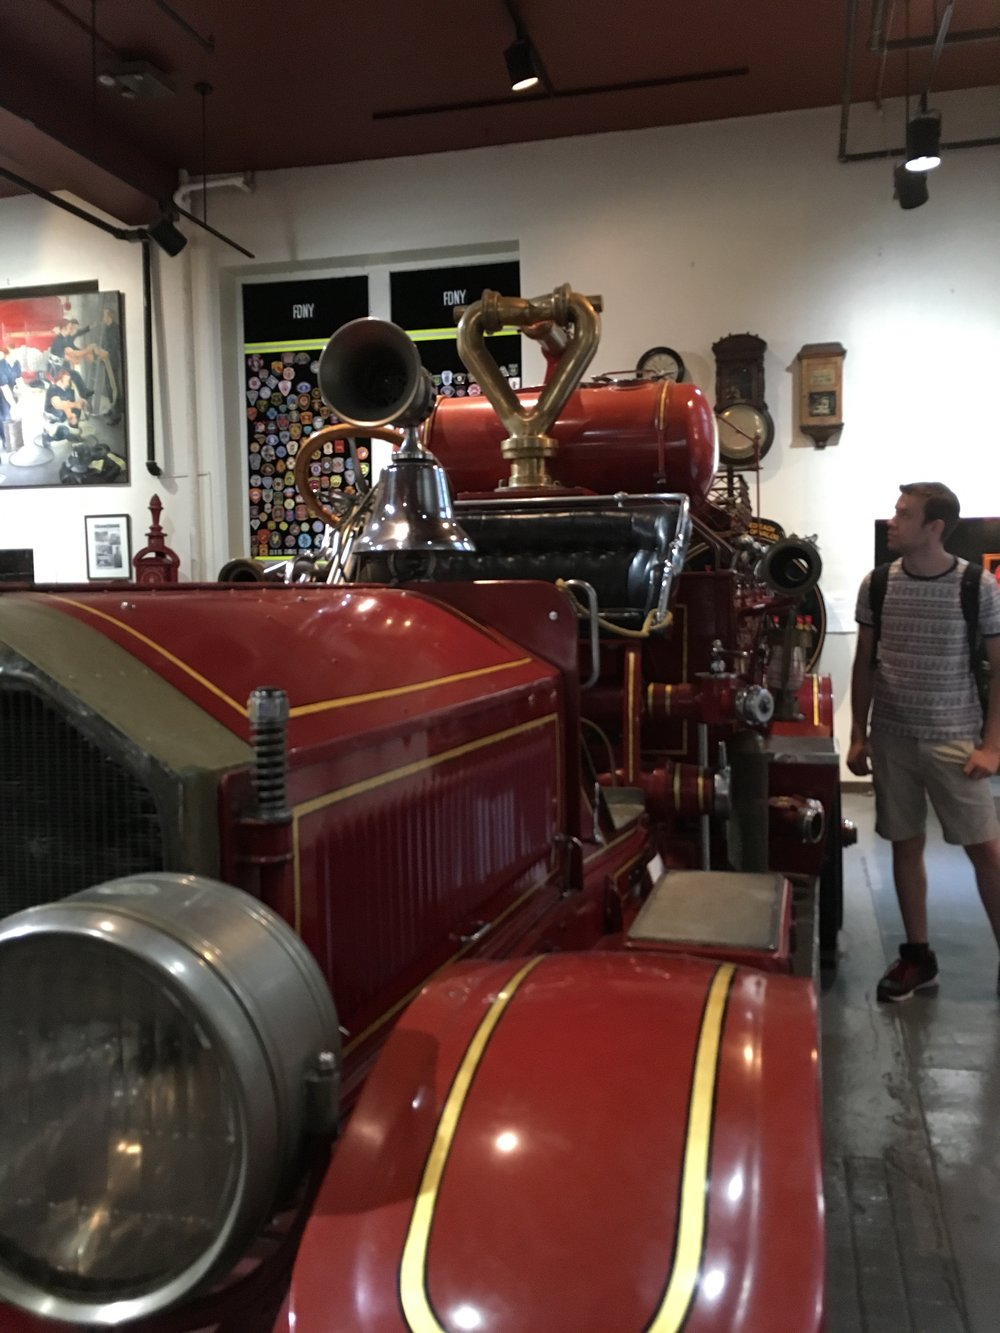 A historic firetruck from the NYC Fire Museum